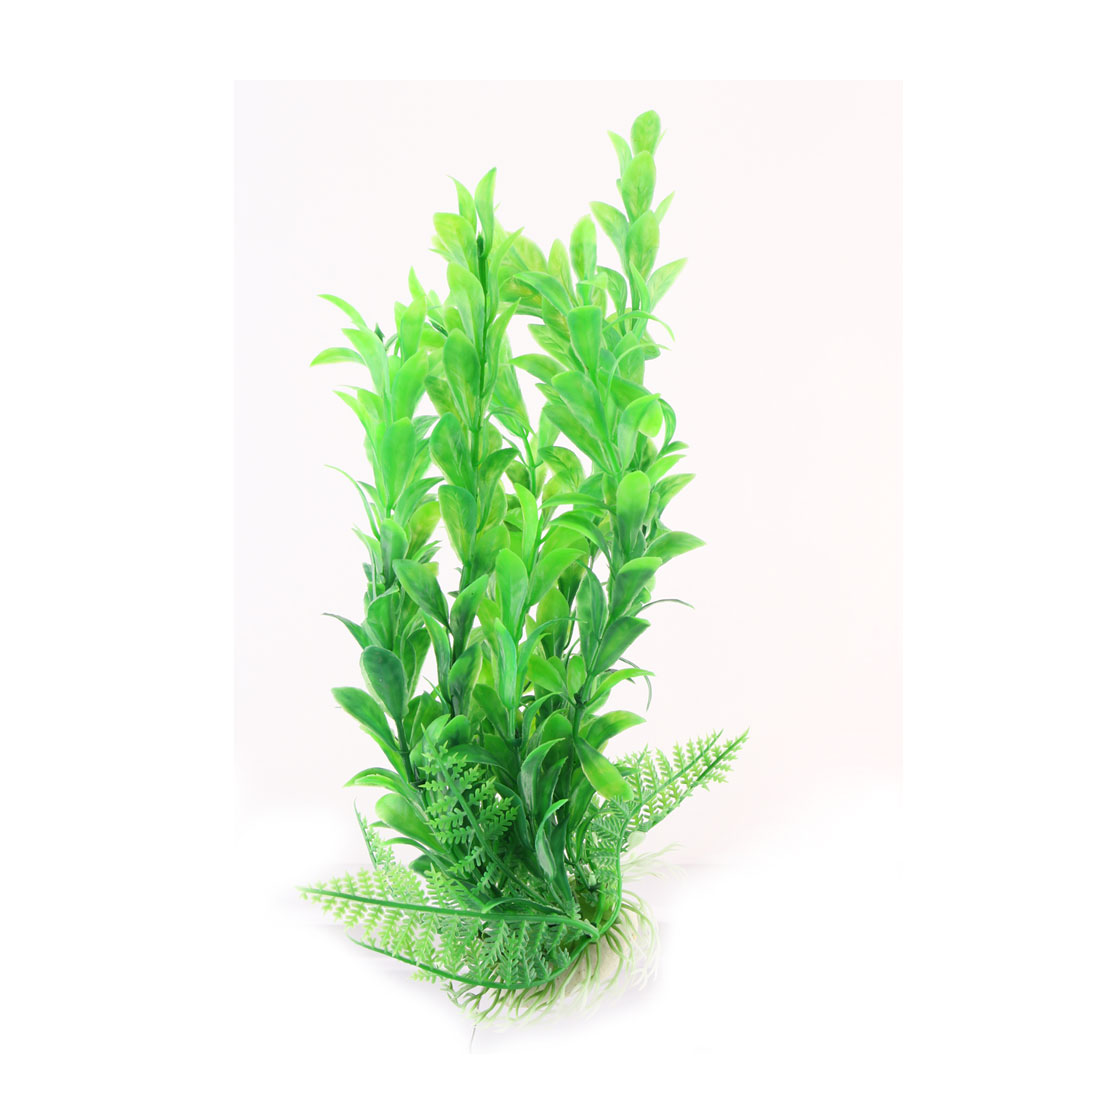 Household Fish Tank Aquarium Plastic Grass Artificial Plant Decor Green Beige